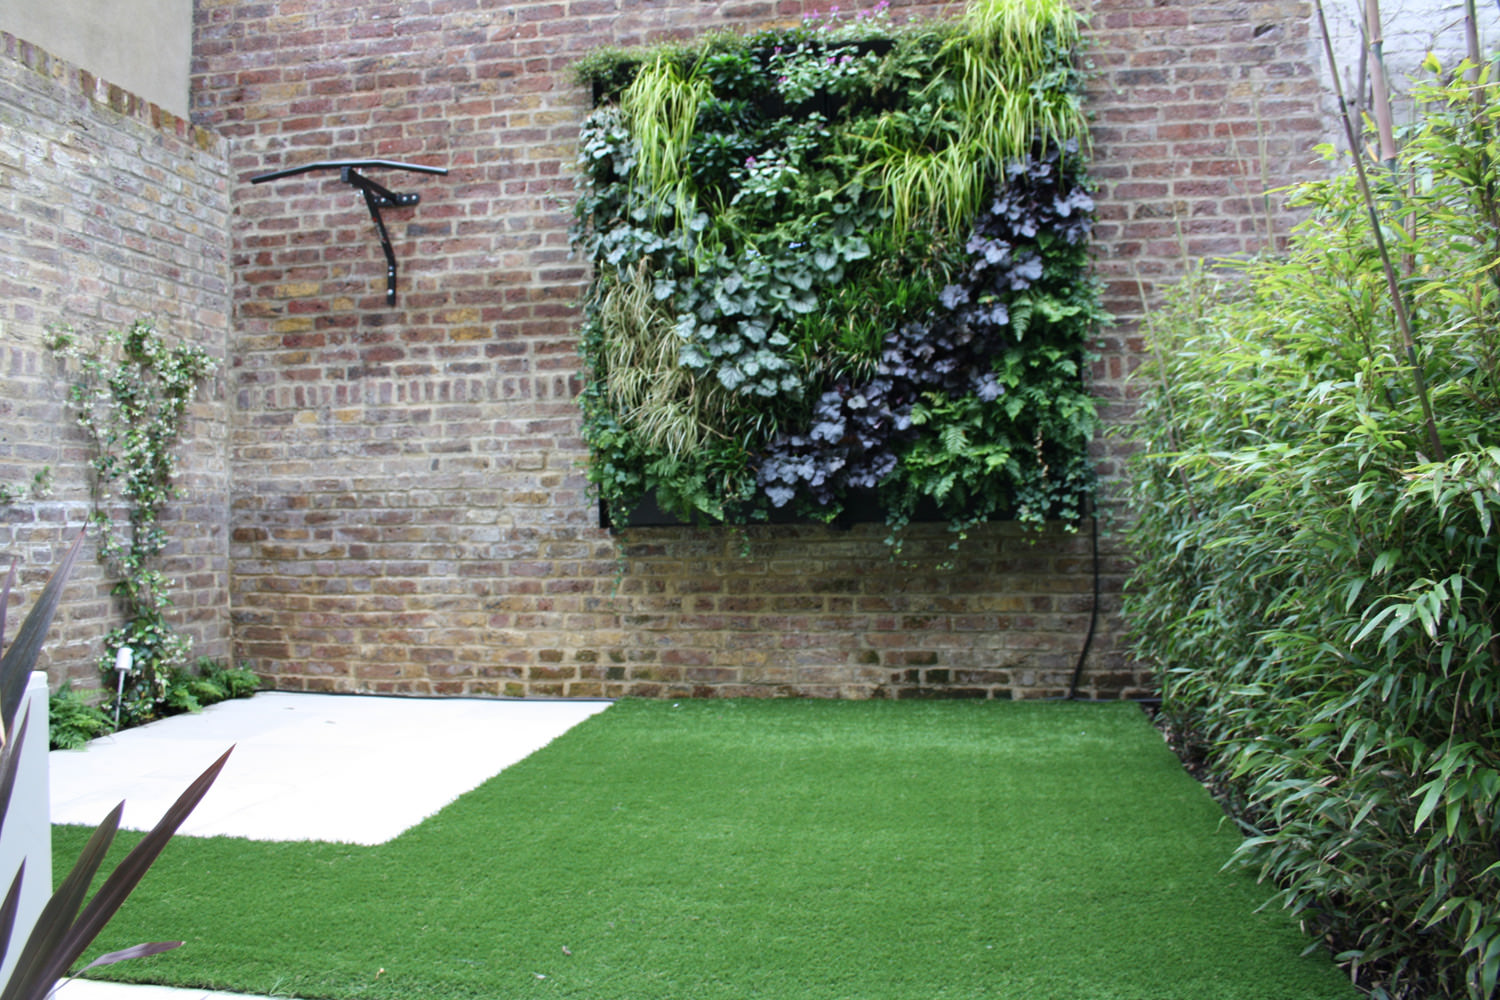 Top 10 london garden designs garden club london for Garden designs for small gardens uk